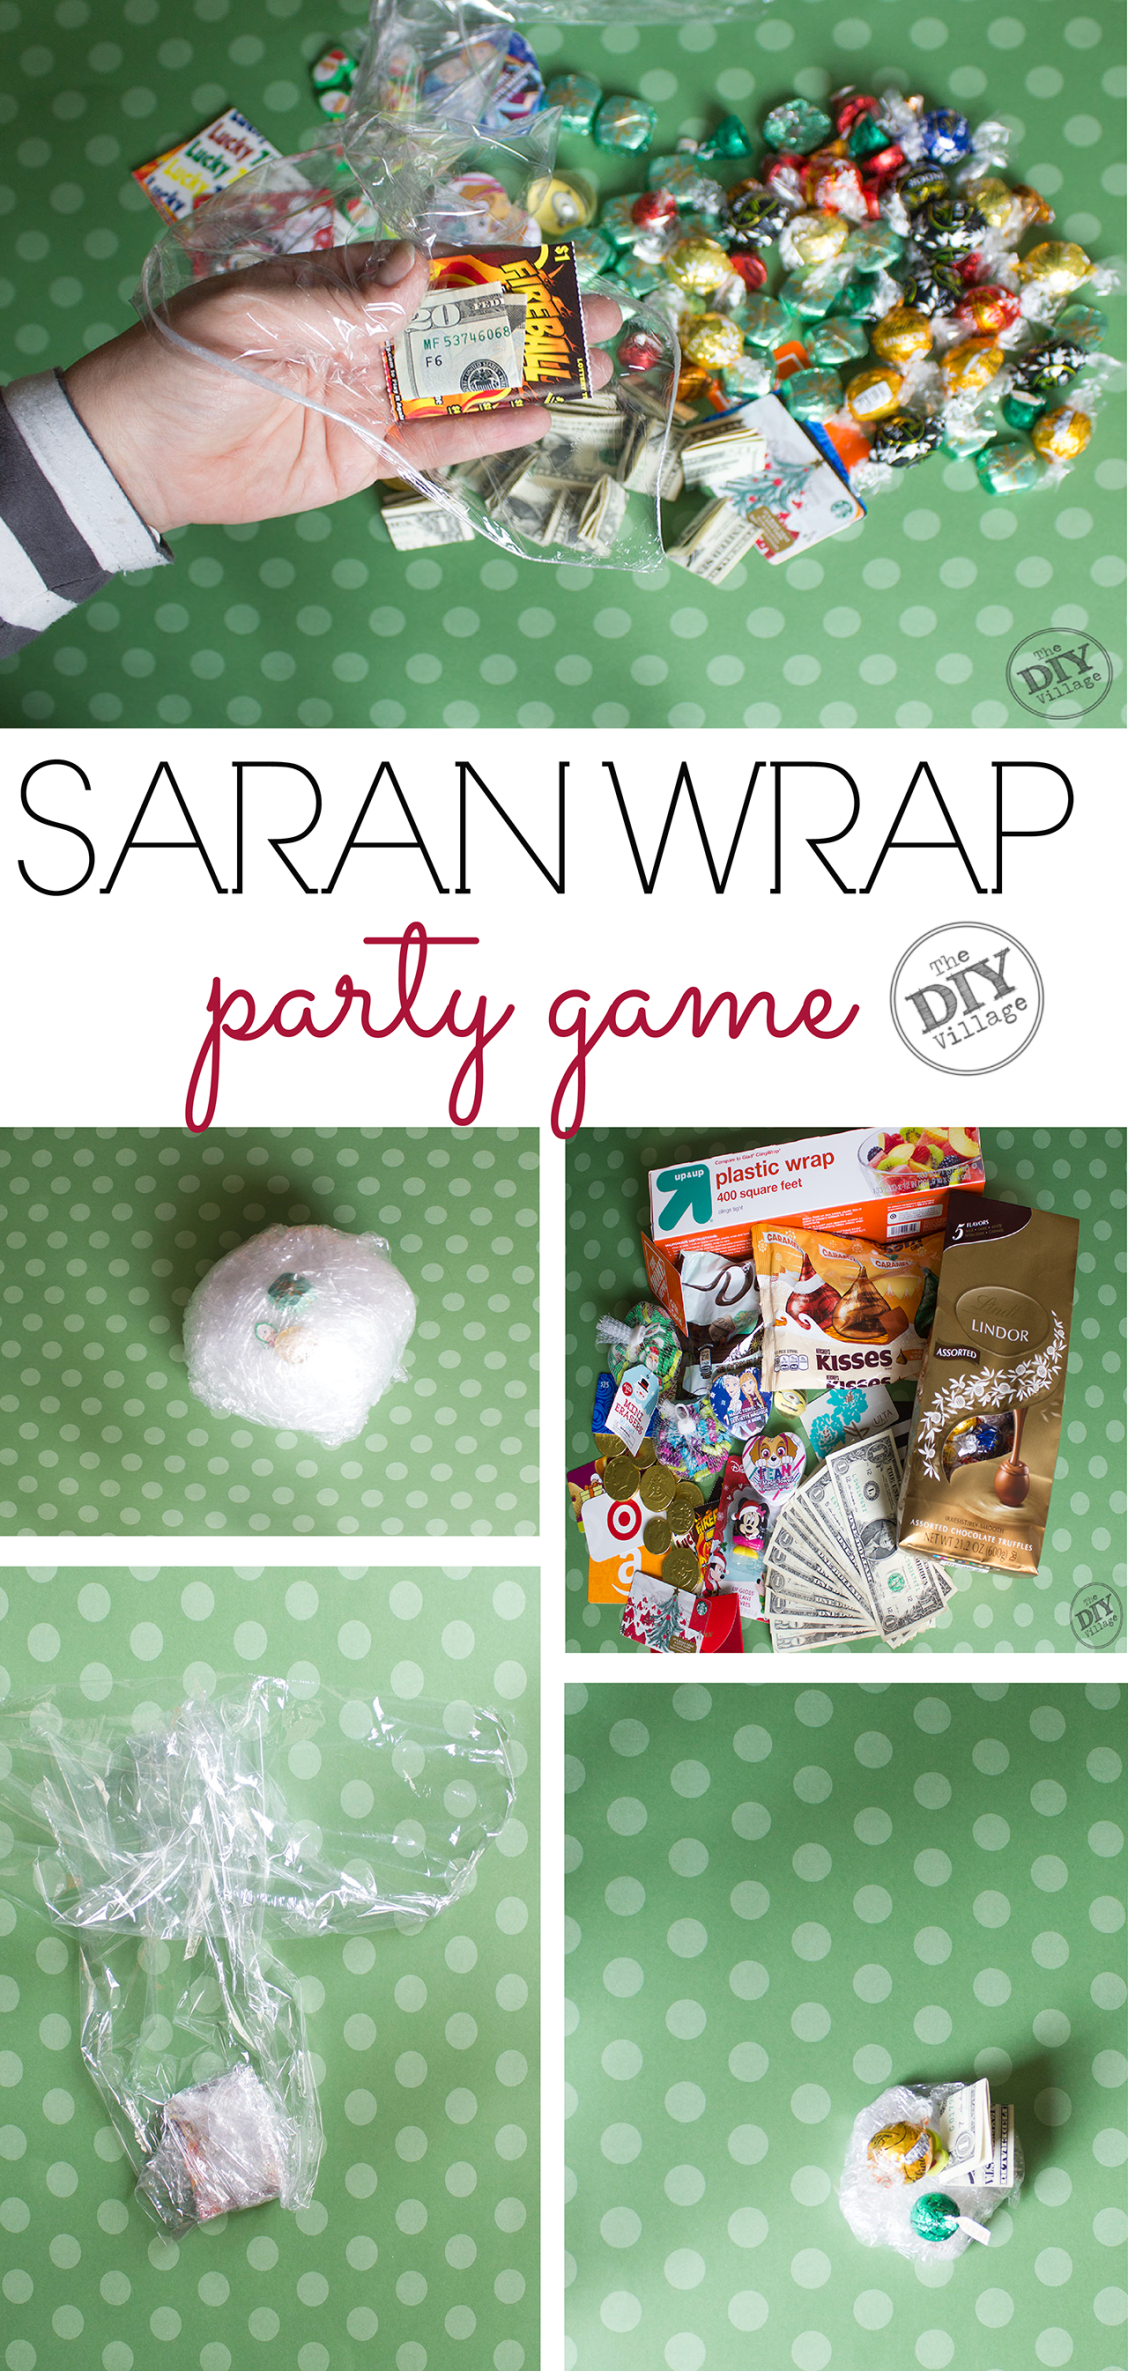 046841162f7 How to play the saran wrap party game  a must for your next get-together!